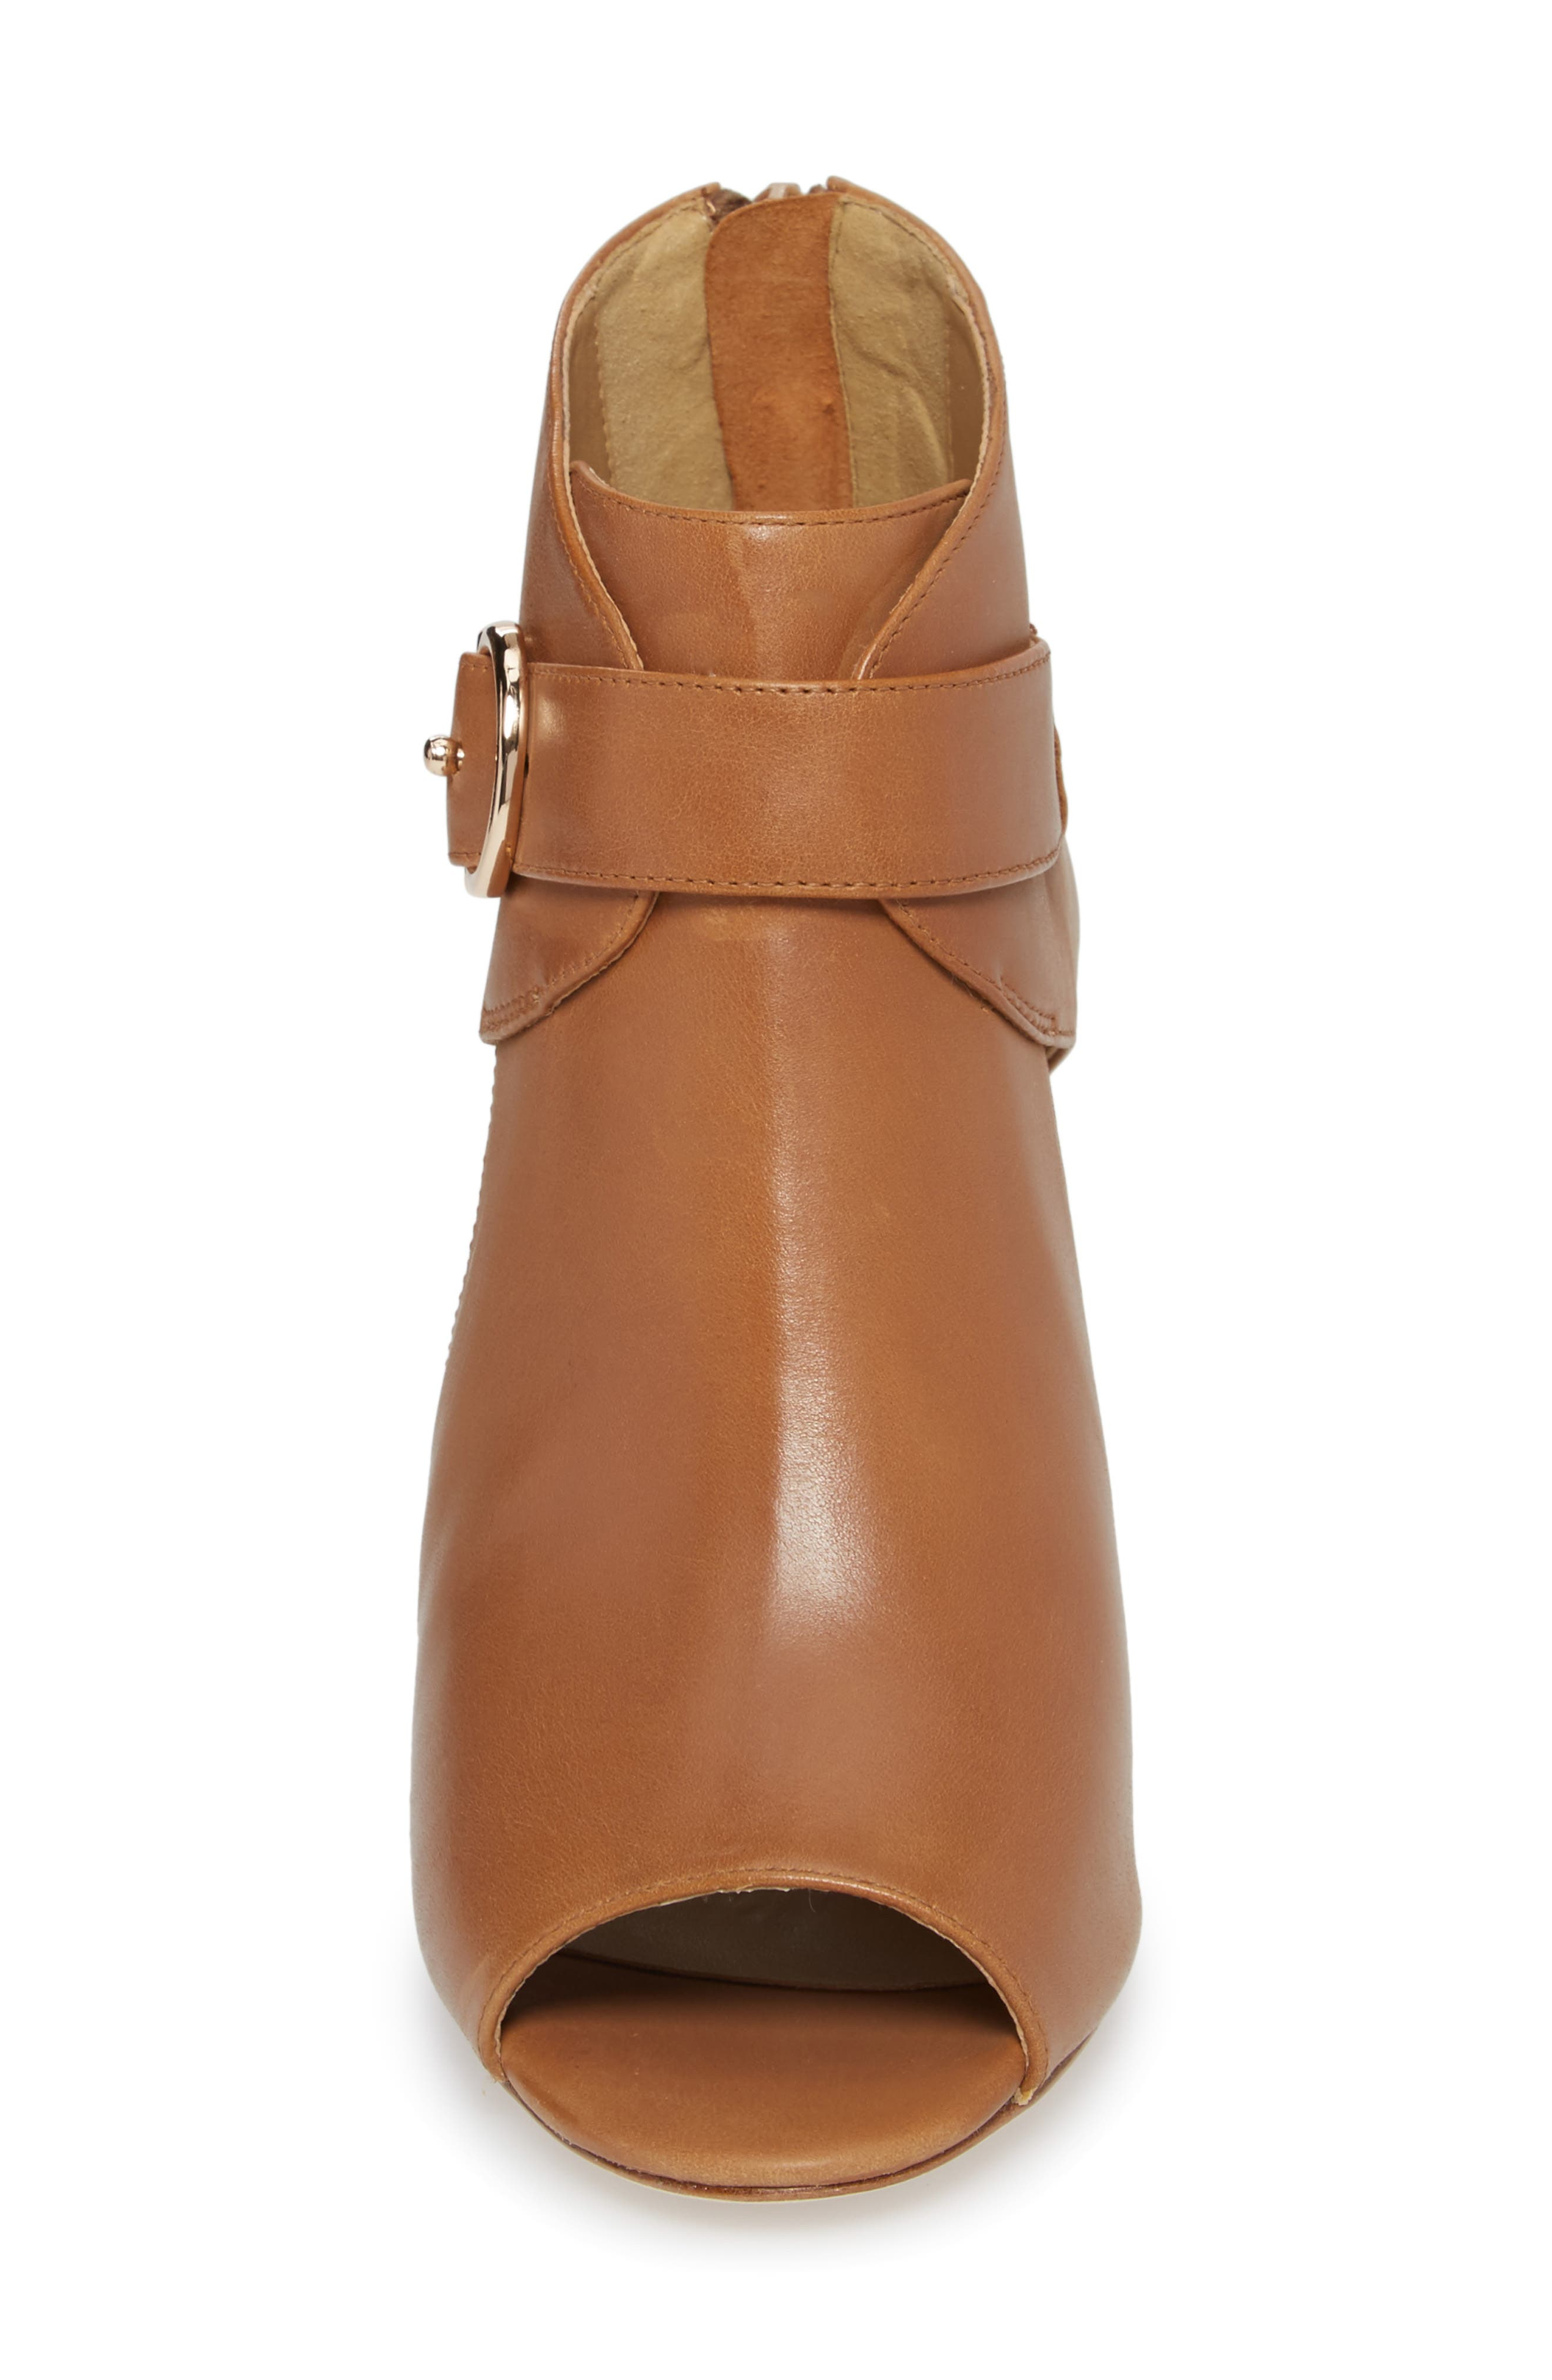 Belka Sandal,                             Alternate thumbnail 4, color,                             Cuoio Leather